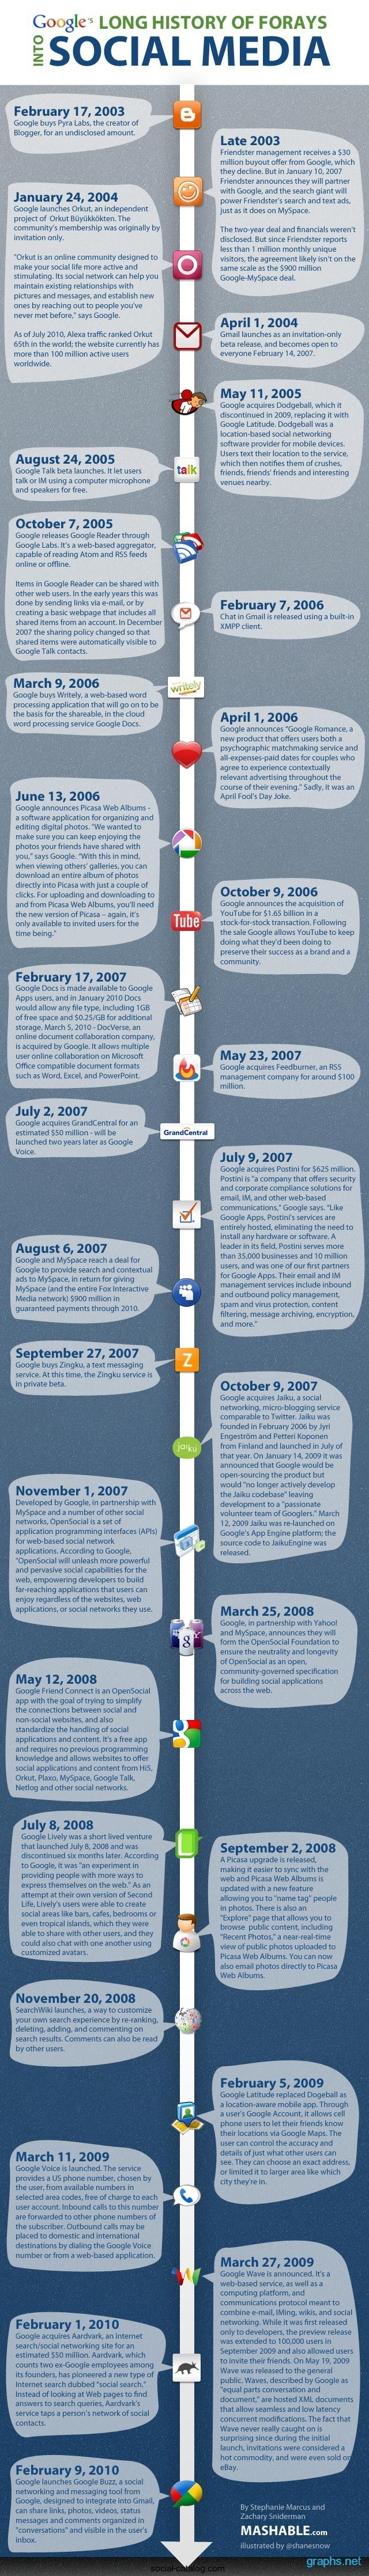 History of Google Social Networking